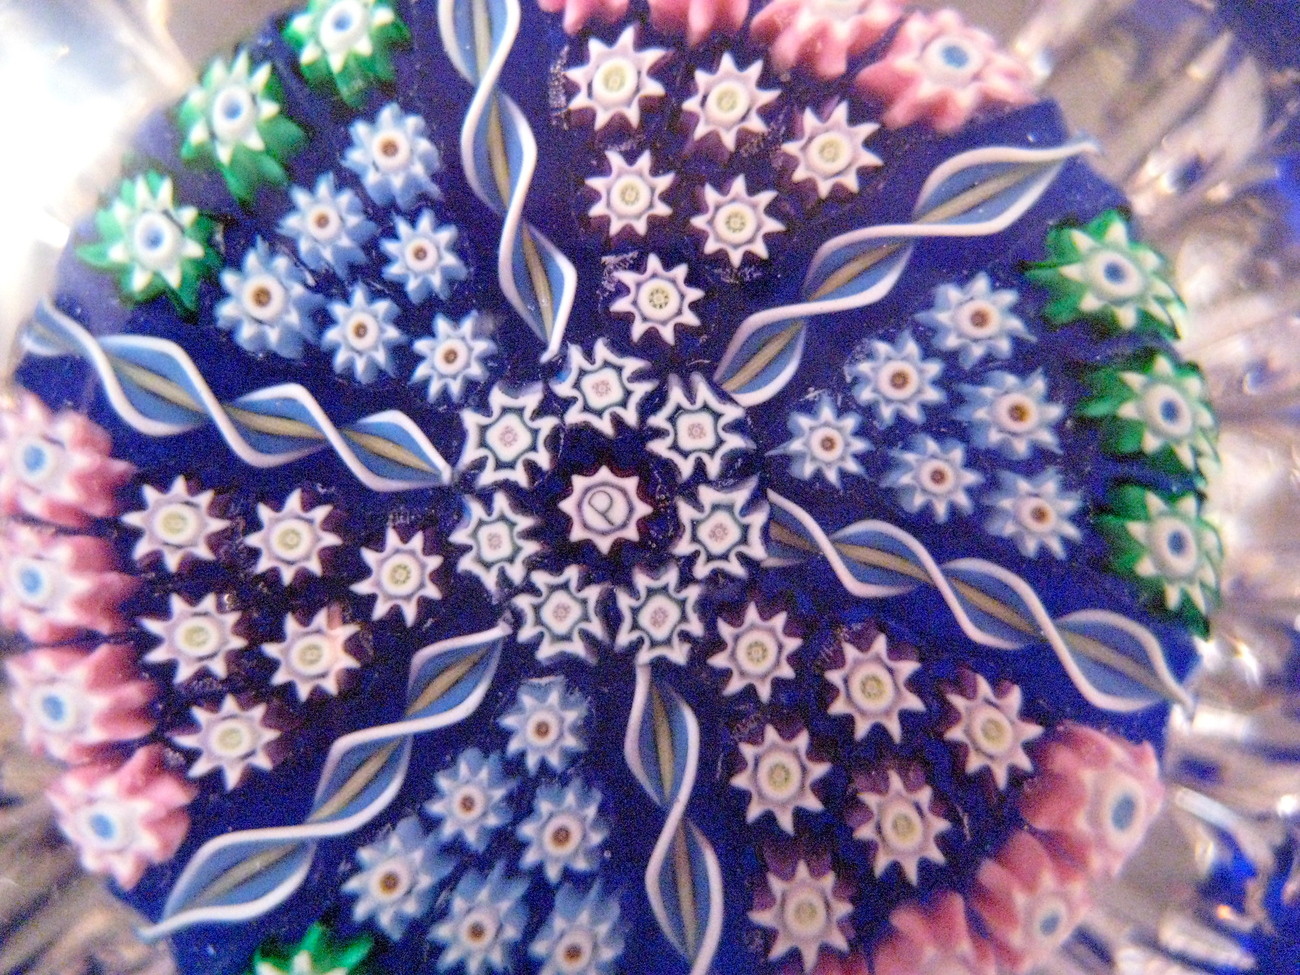 Perthshire Studio Glass Paperweight with Central P Cane and Pressed Fluted Edges